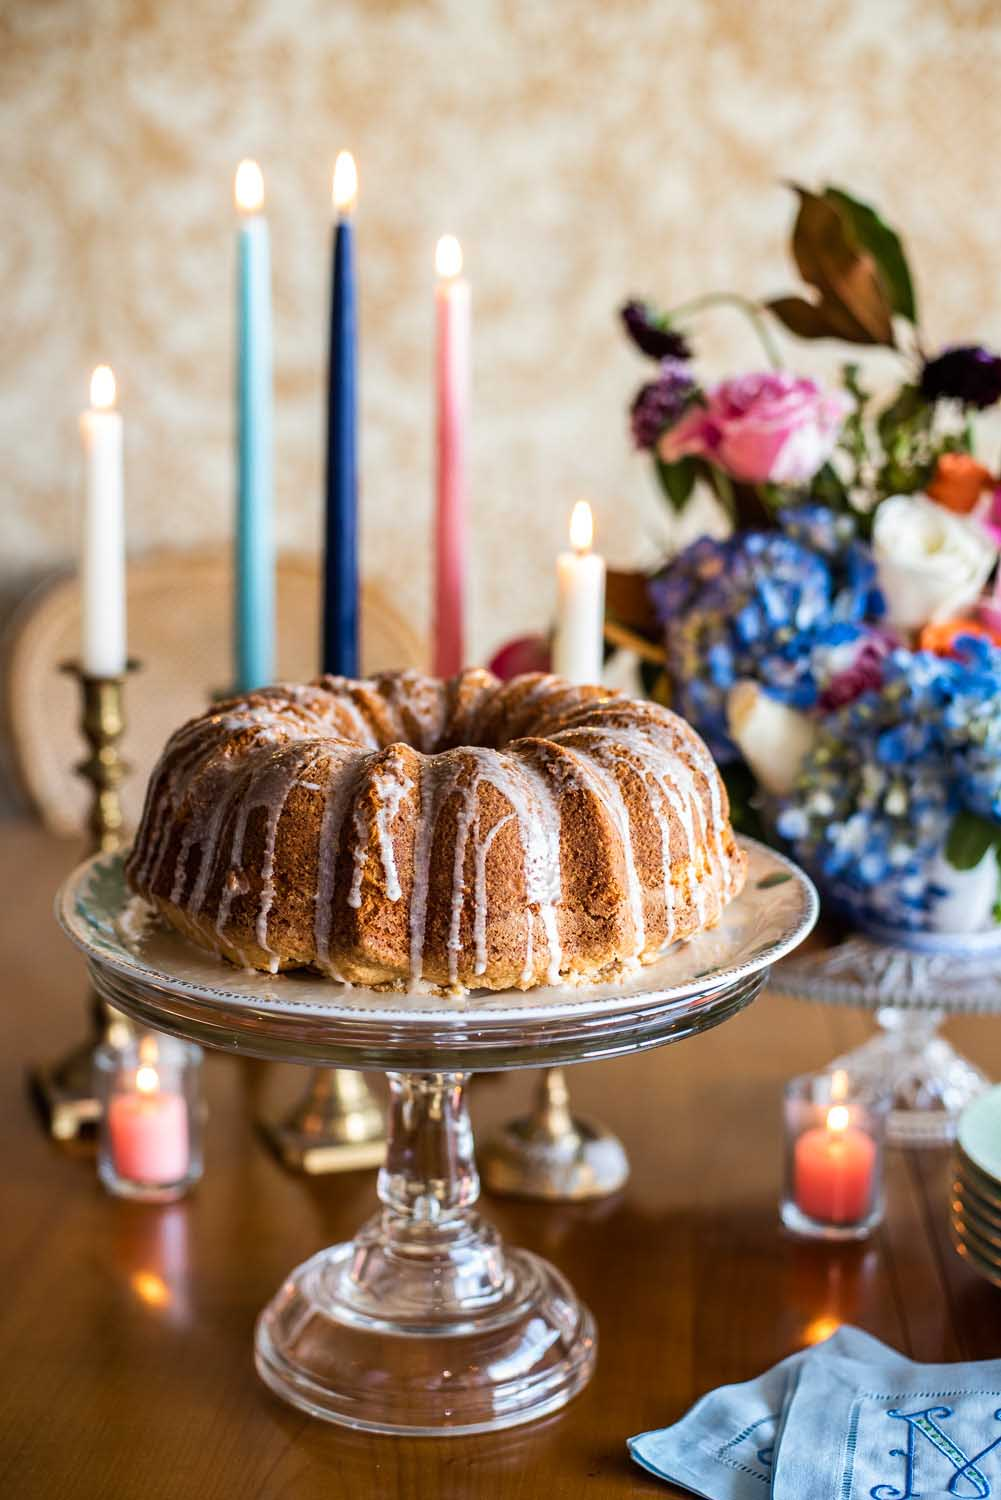 Jackson Morgan bundt cake